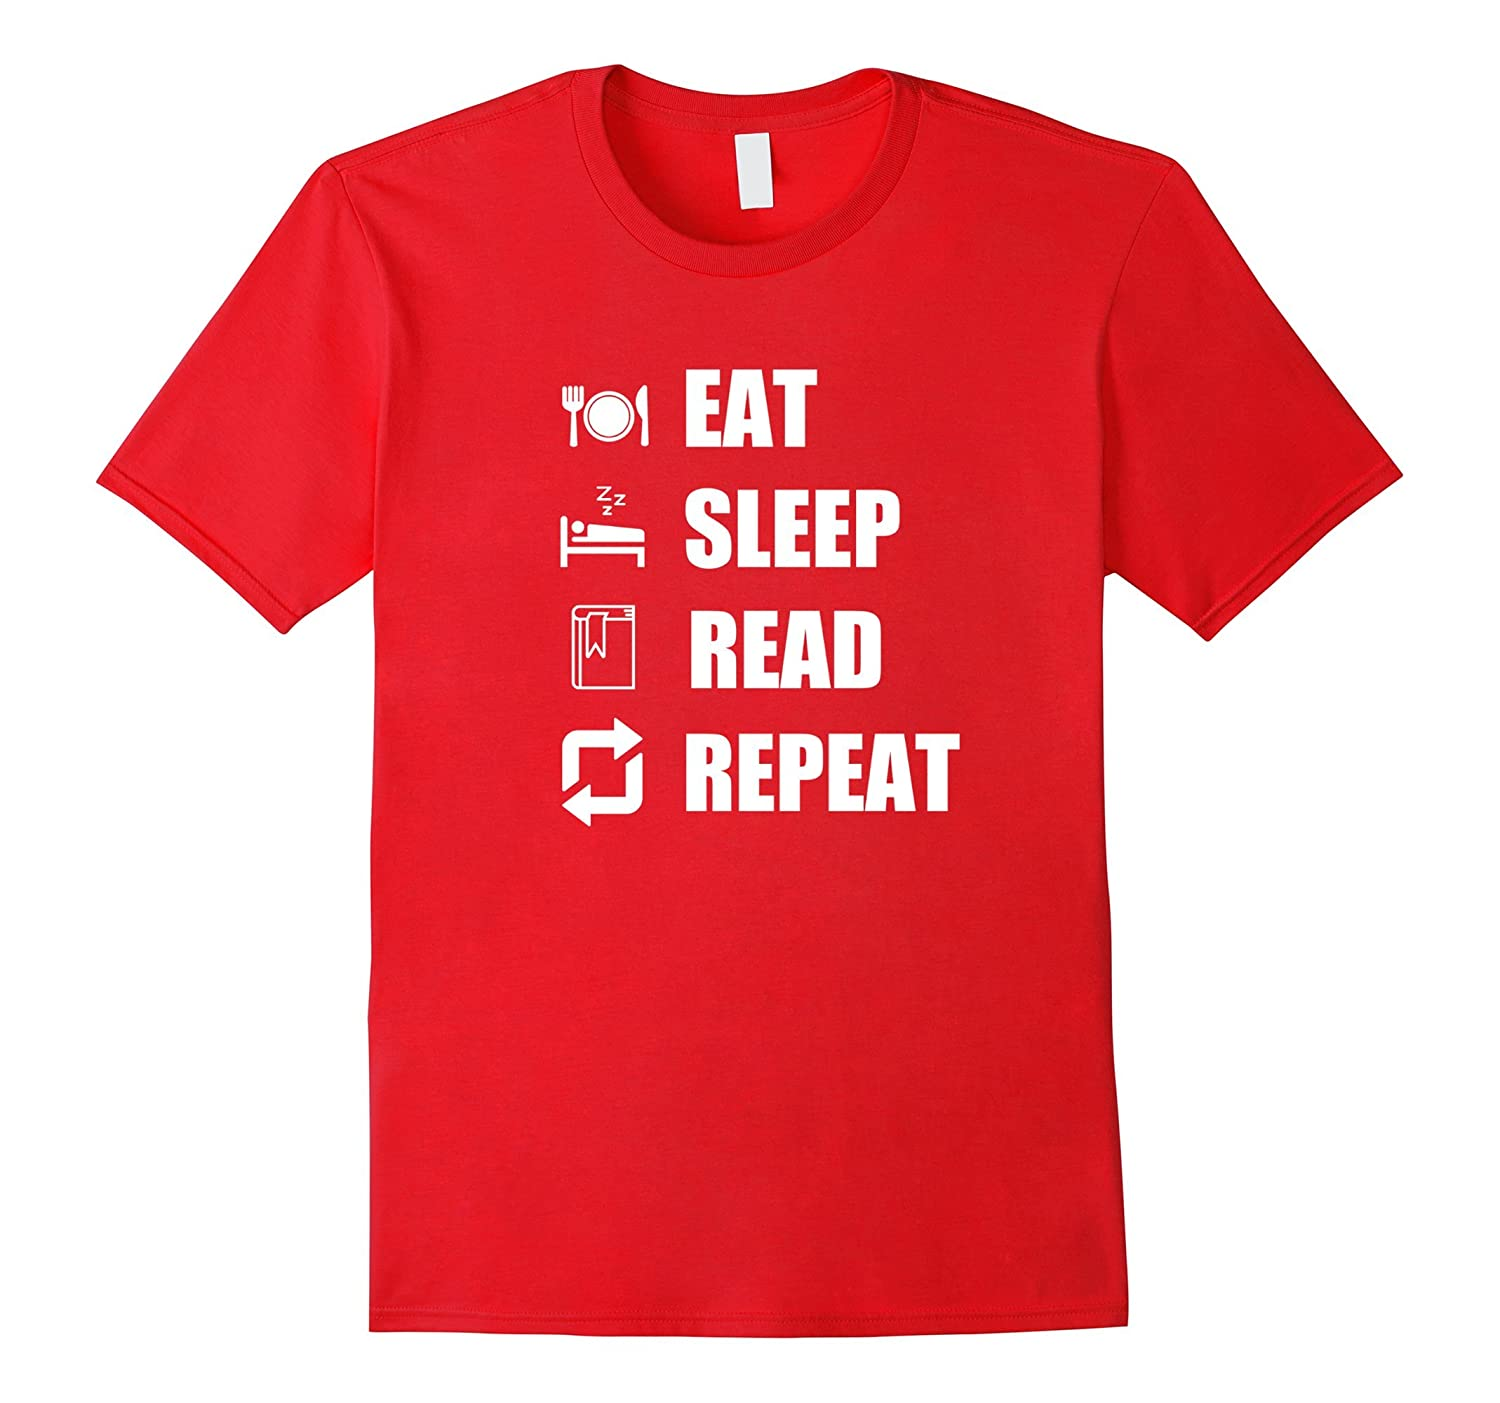 Funny Reading Shirt Eat Sleep Read Repeat T-shirt Adult Gift-CL